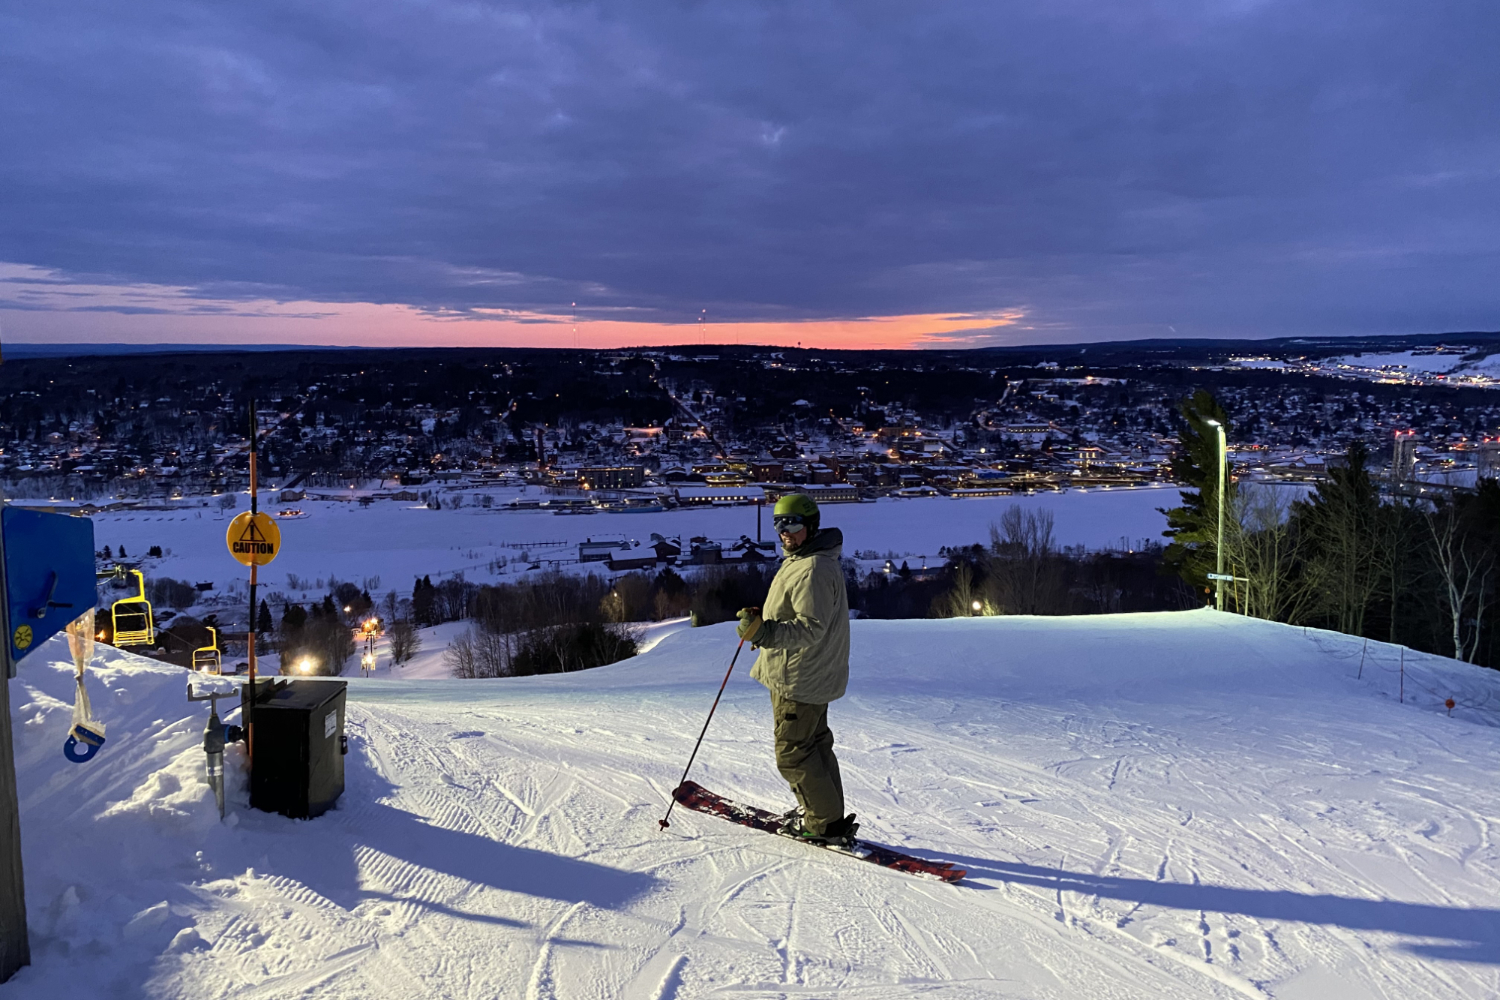 skier at sunset on top of mountain